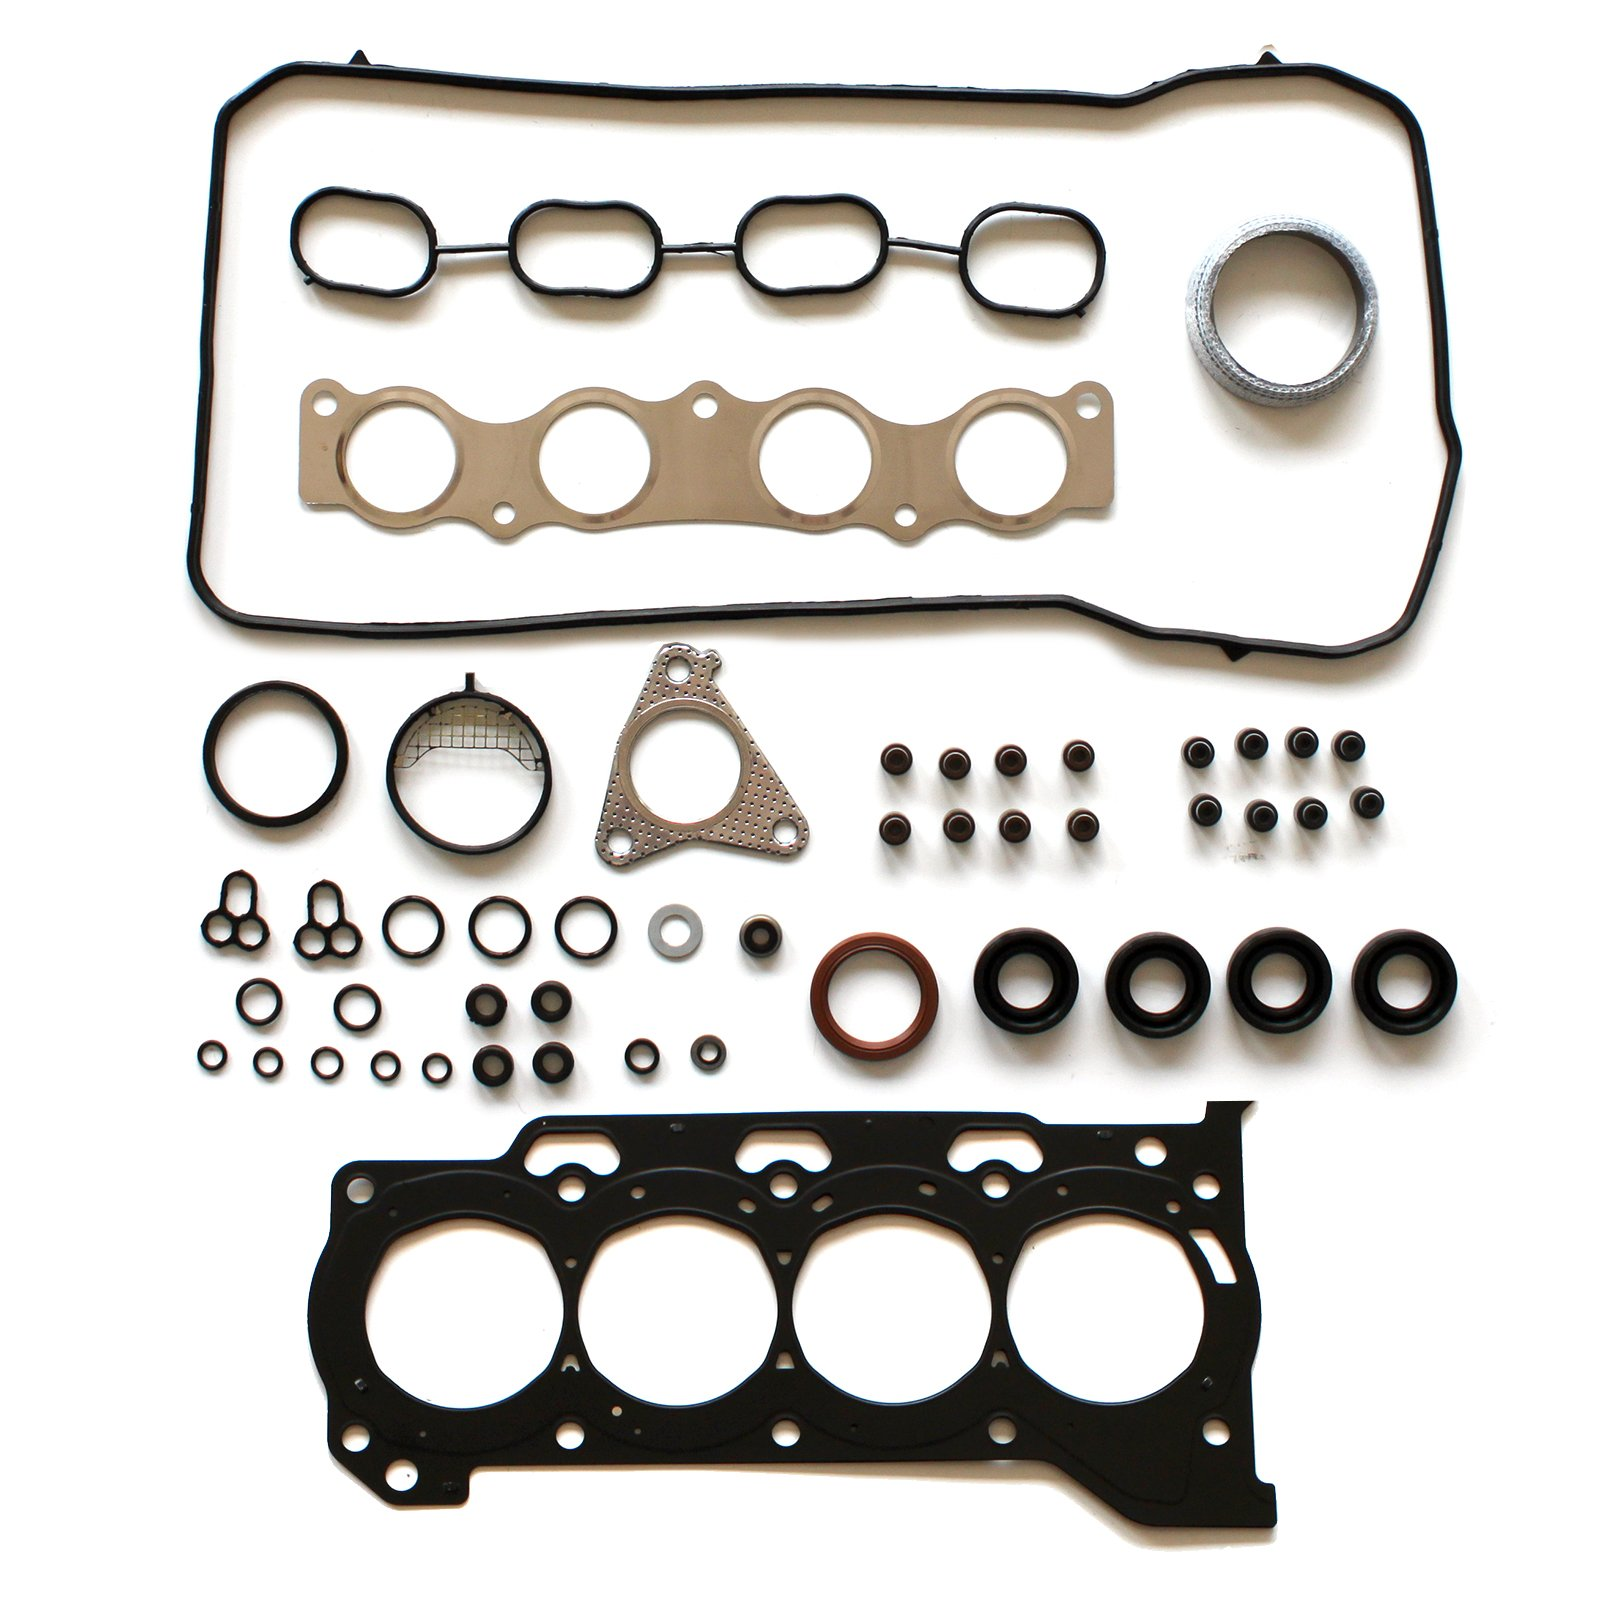 SCITOO Replacement for Head Gasket Sets fit Pontiac Vibe Scion Toyota Corolla 1.8L 2008-2015 Automotive Engine Head Gaskets Sets